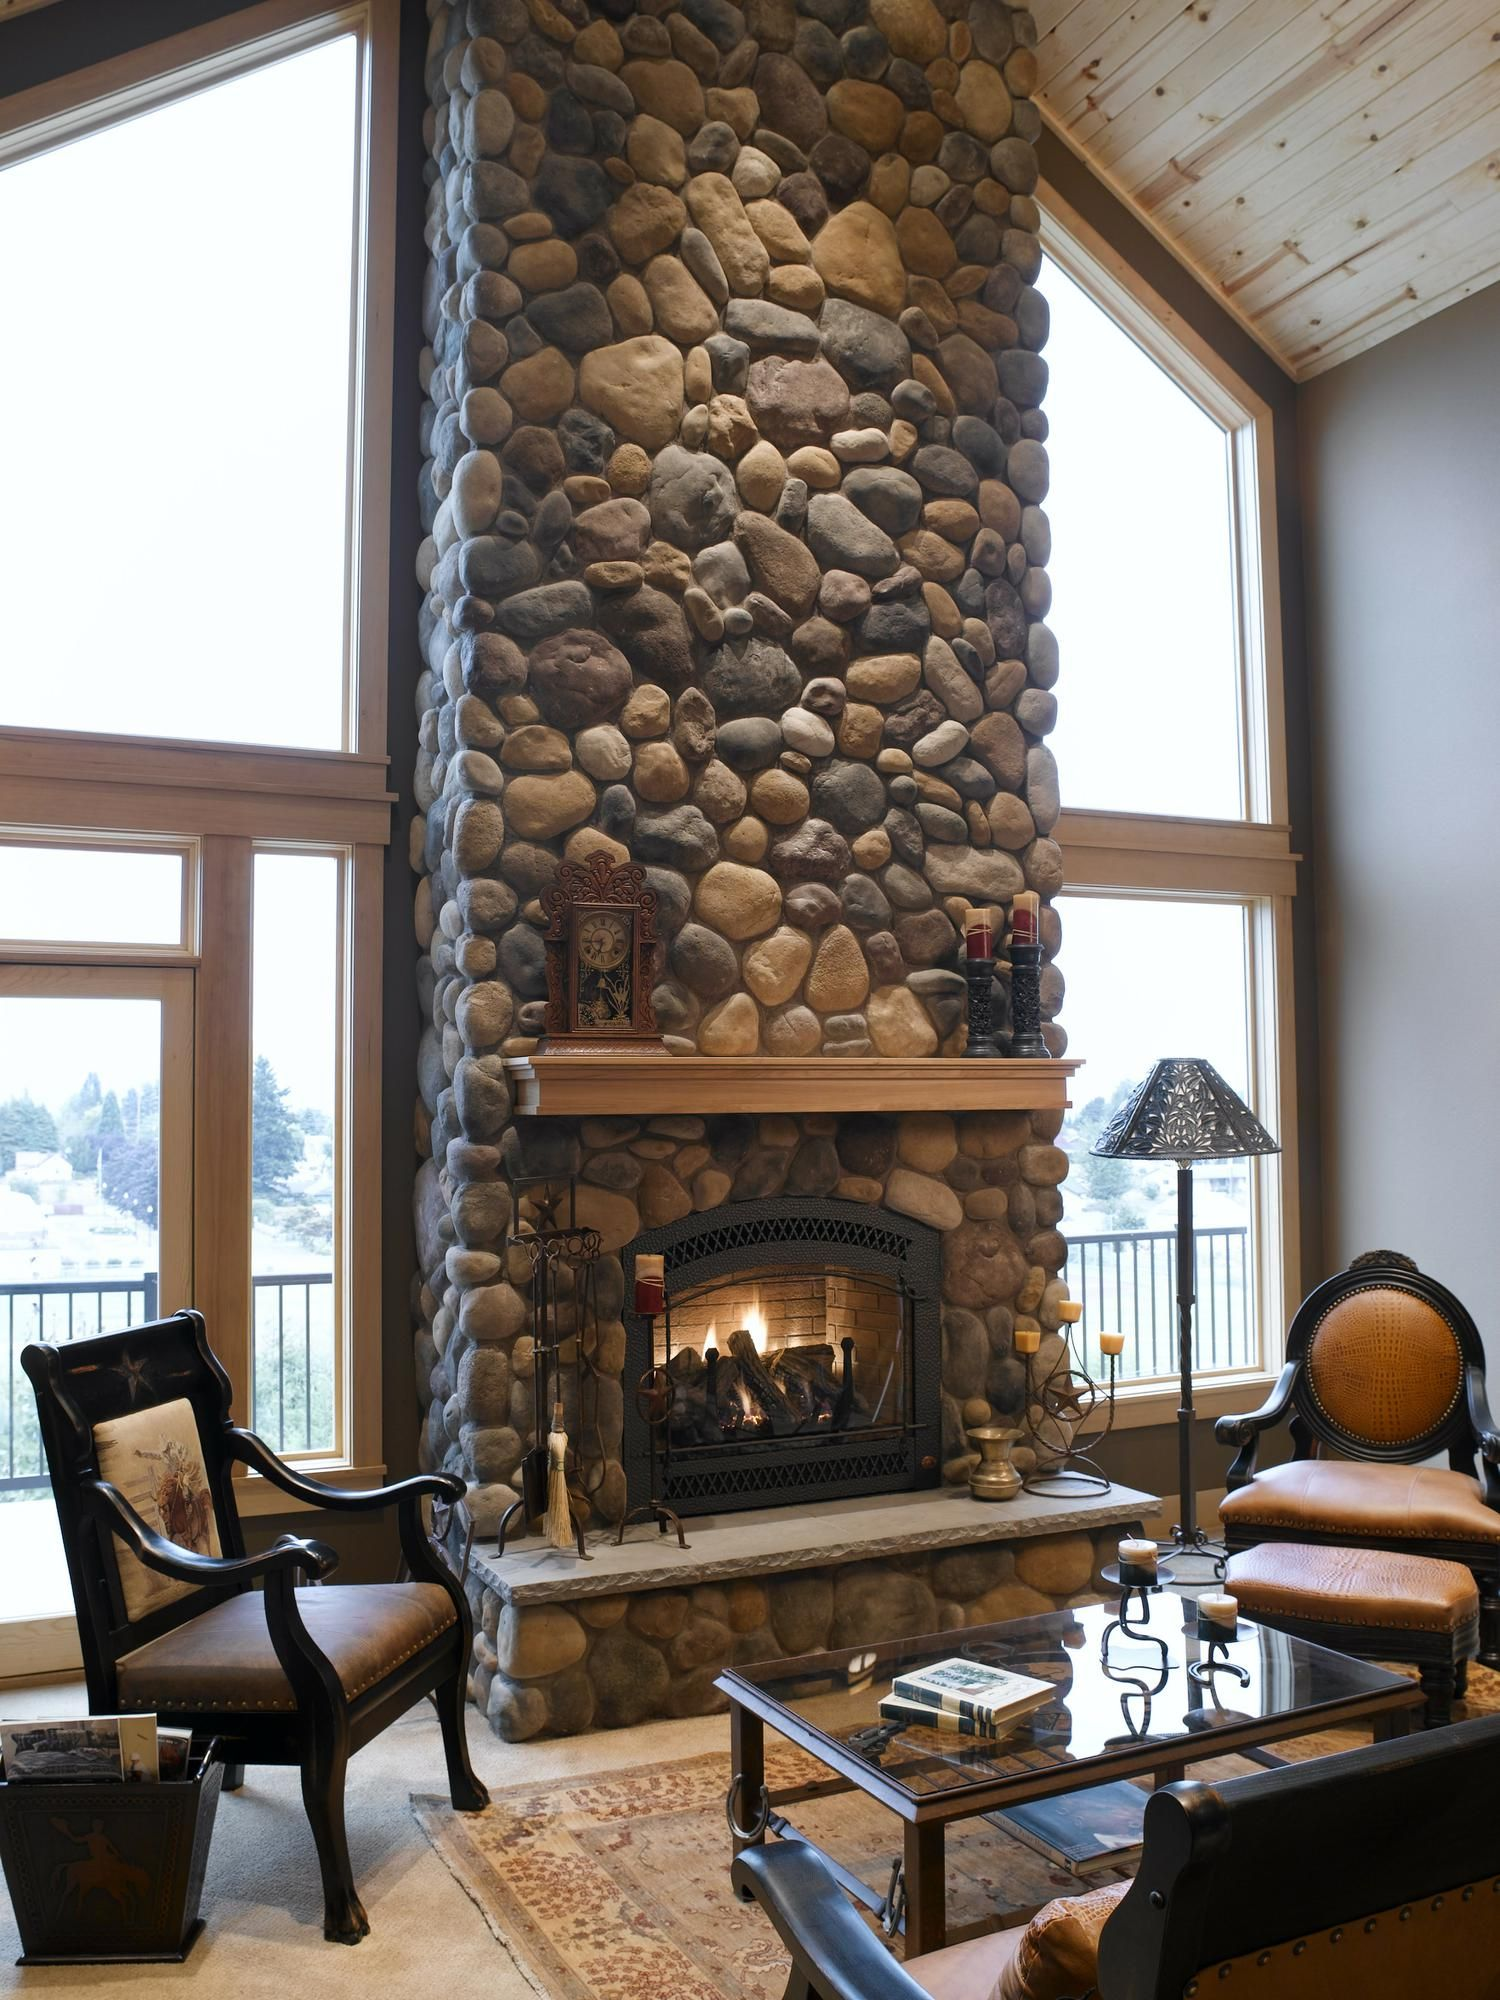 River rock fireplace pictures - Yakima River Rock Fireplace